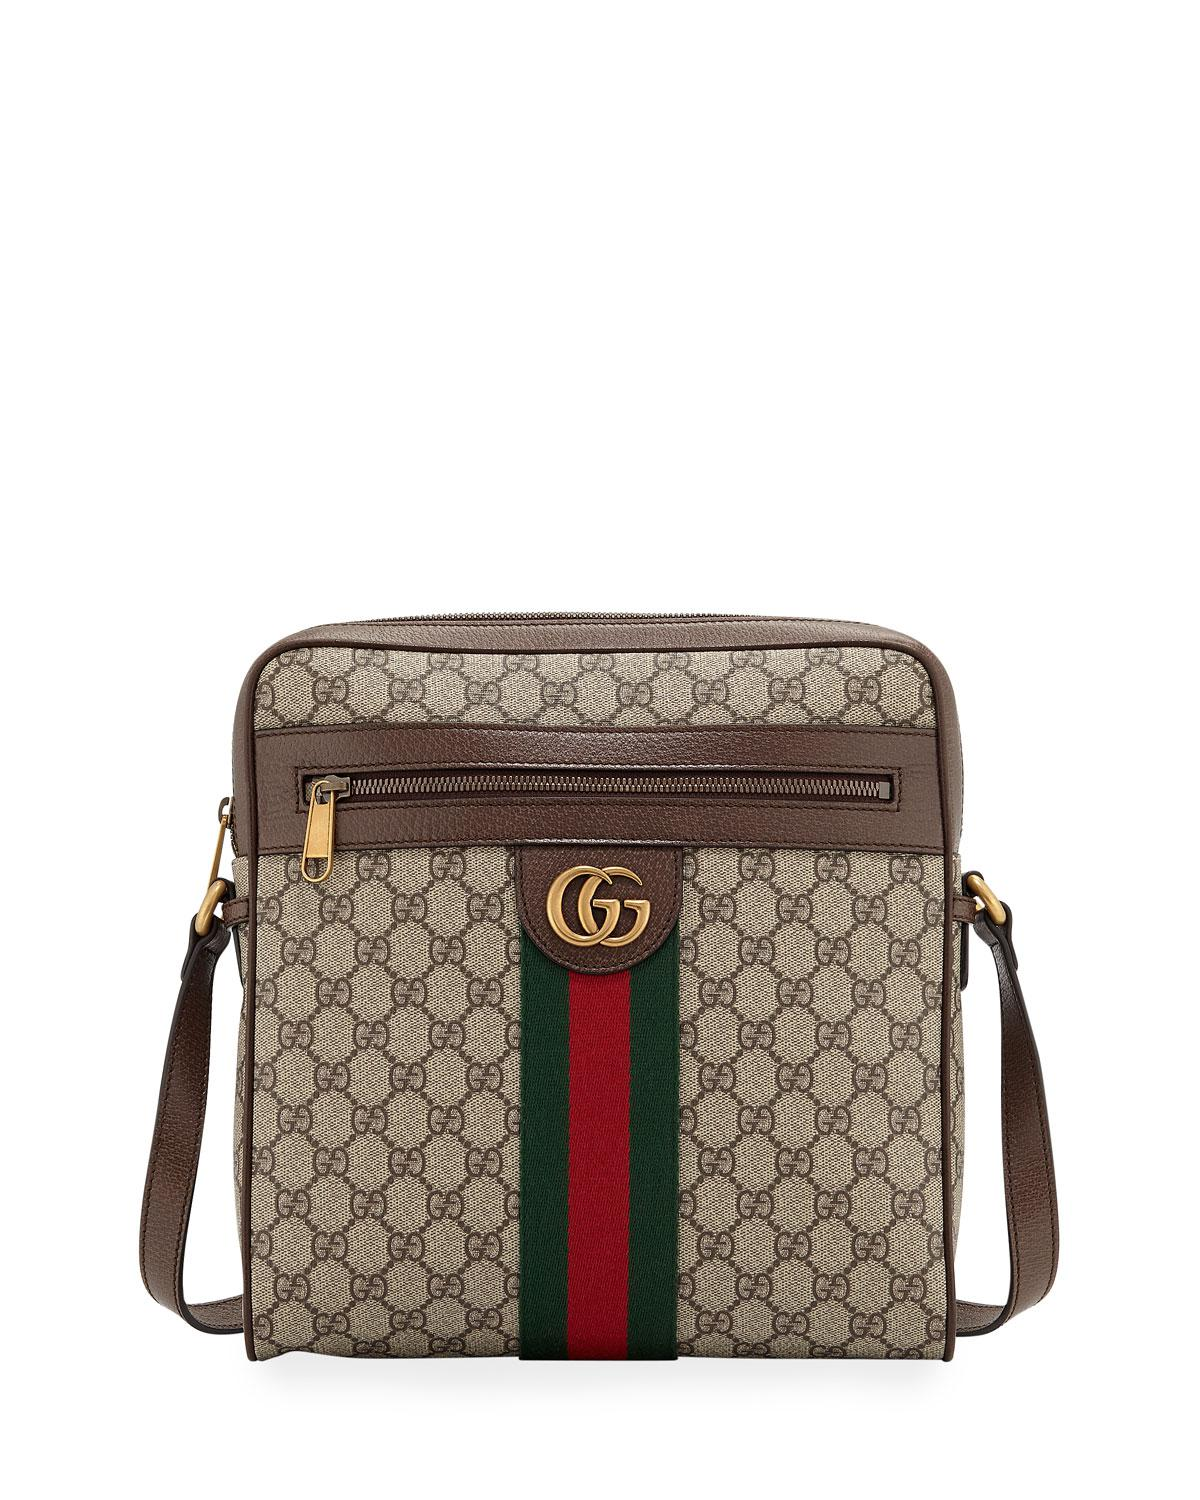 918261c41354 Gucci Ophidia GG Small Messenger Bag in Natural for Men - Lyst